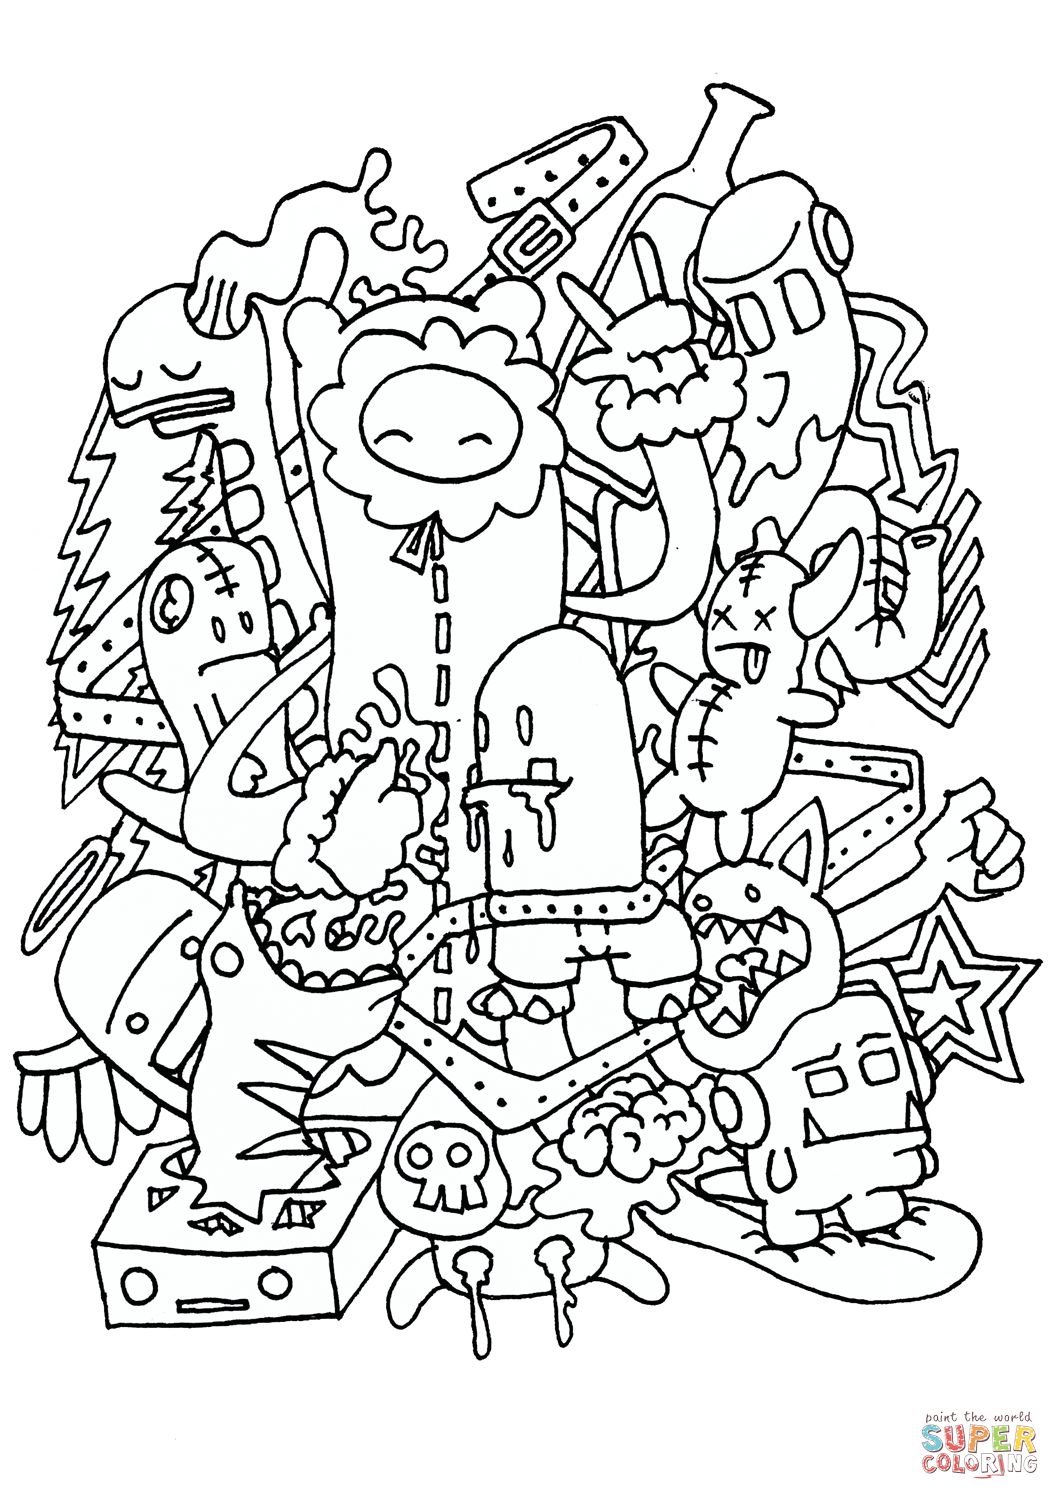 Doodle Rocking Coloring Page From Doodle Art Category